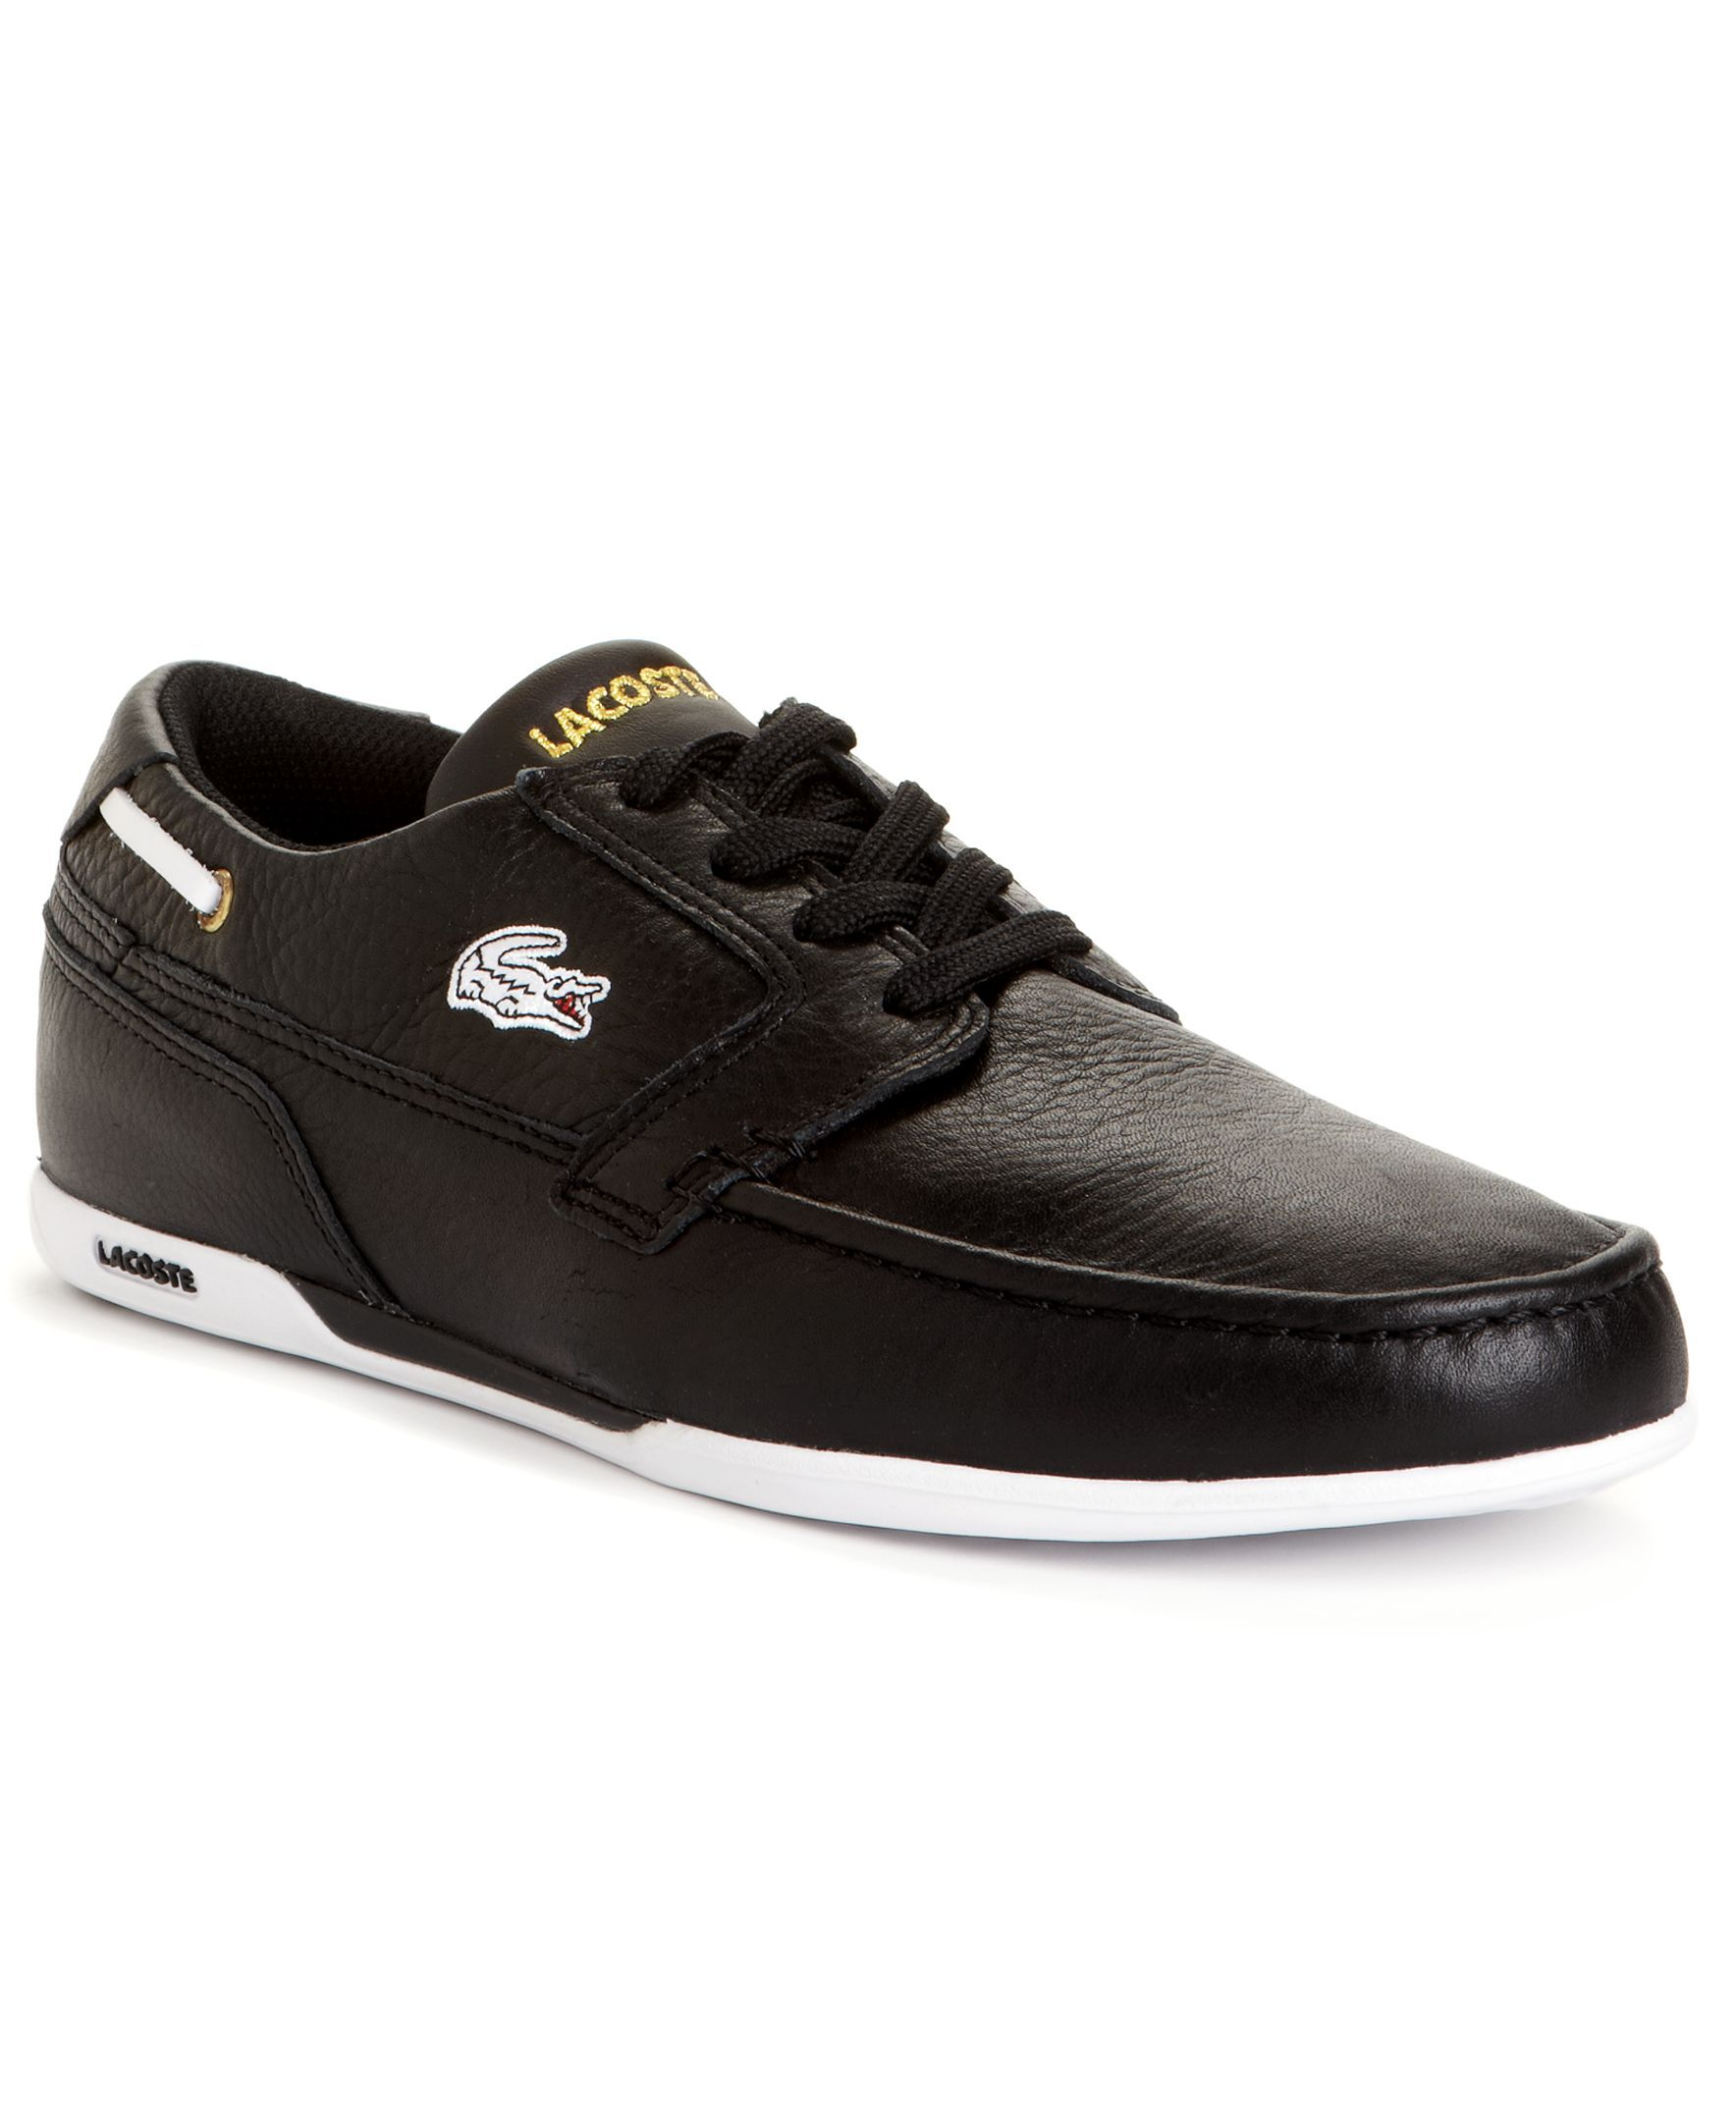 6f778514ac Lacoste Dreyfus Leather Boat Shoes | Products | Lacoste shoes ...